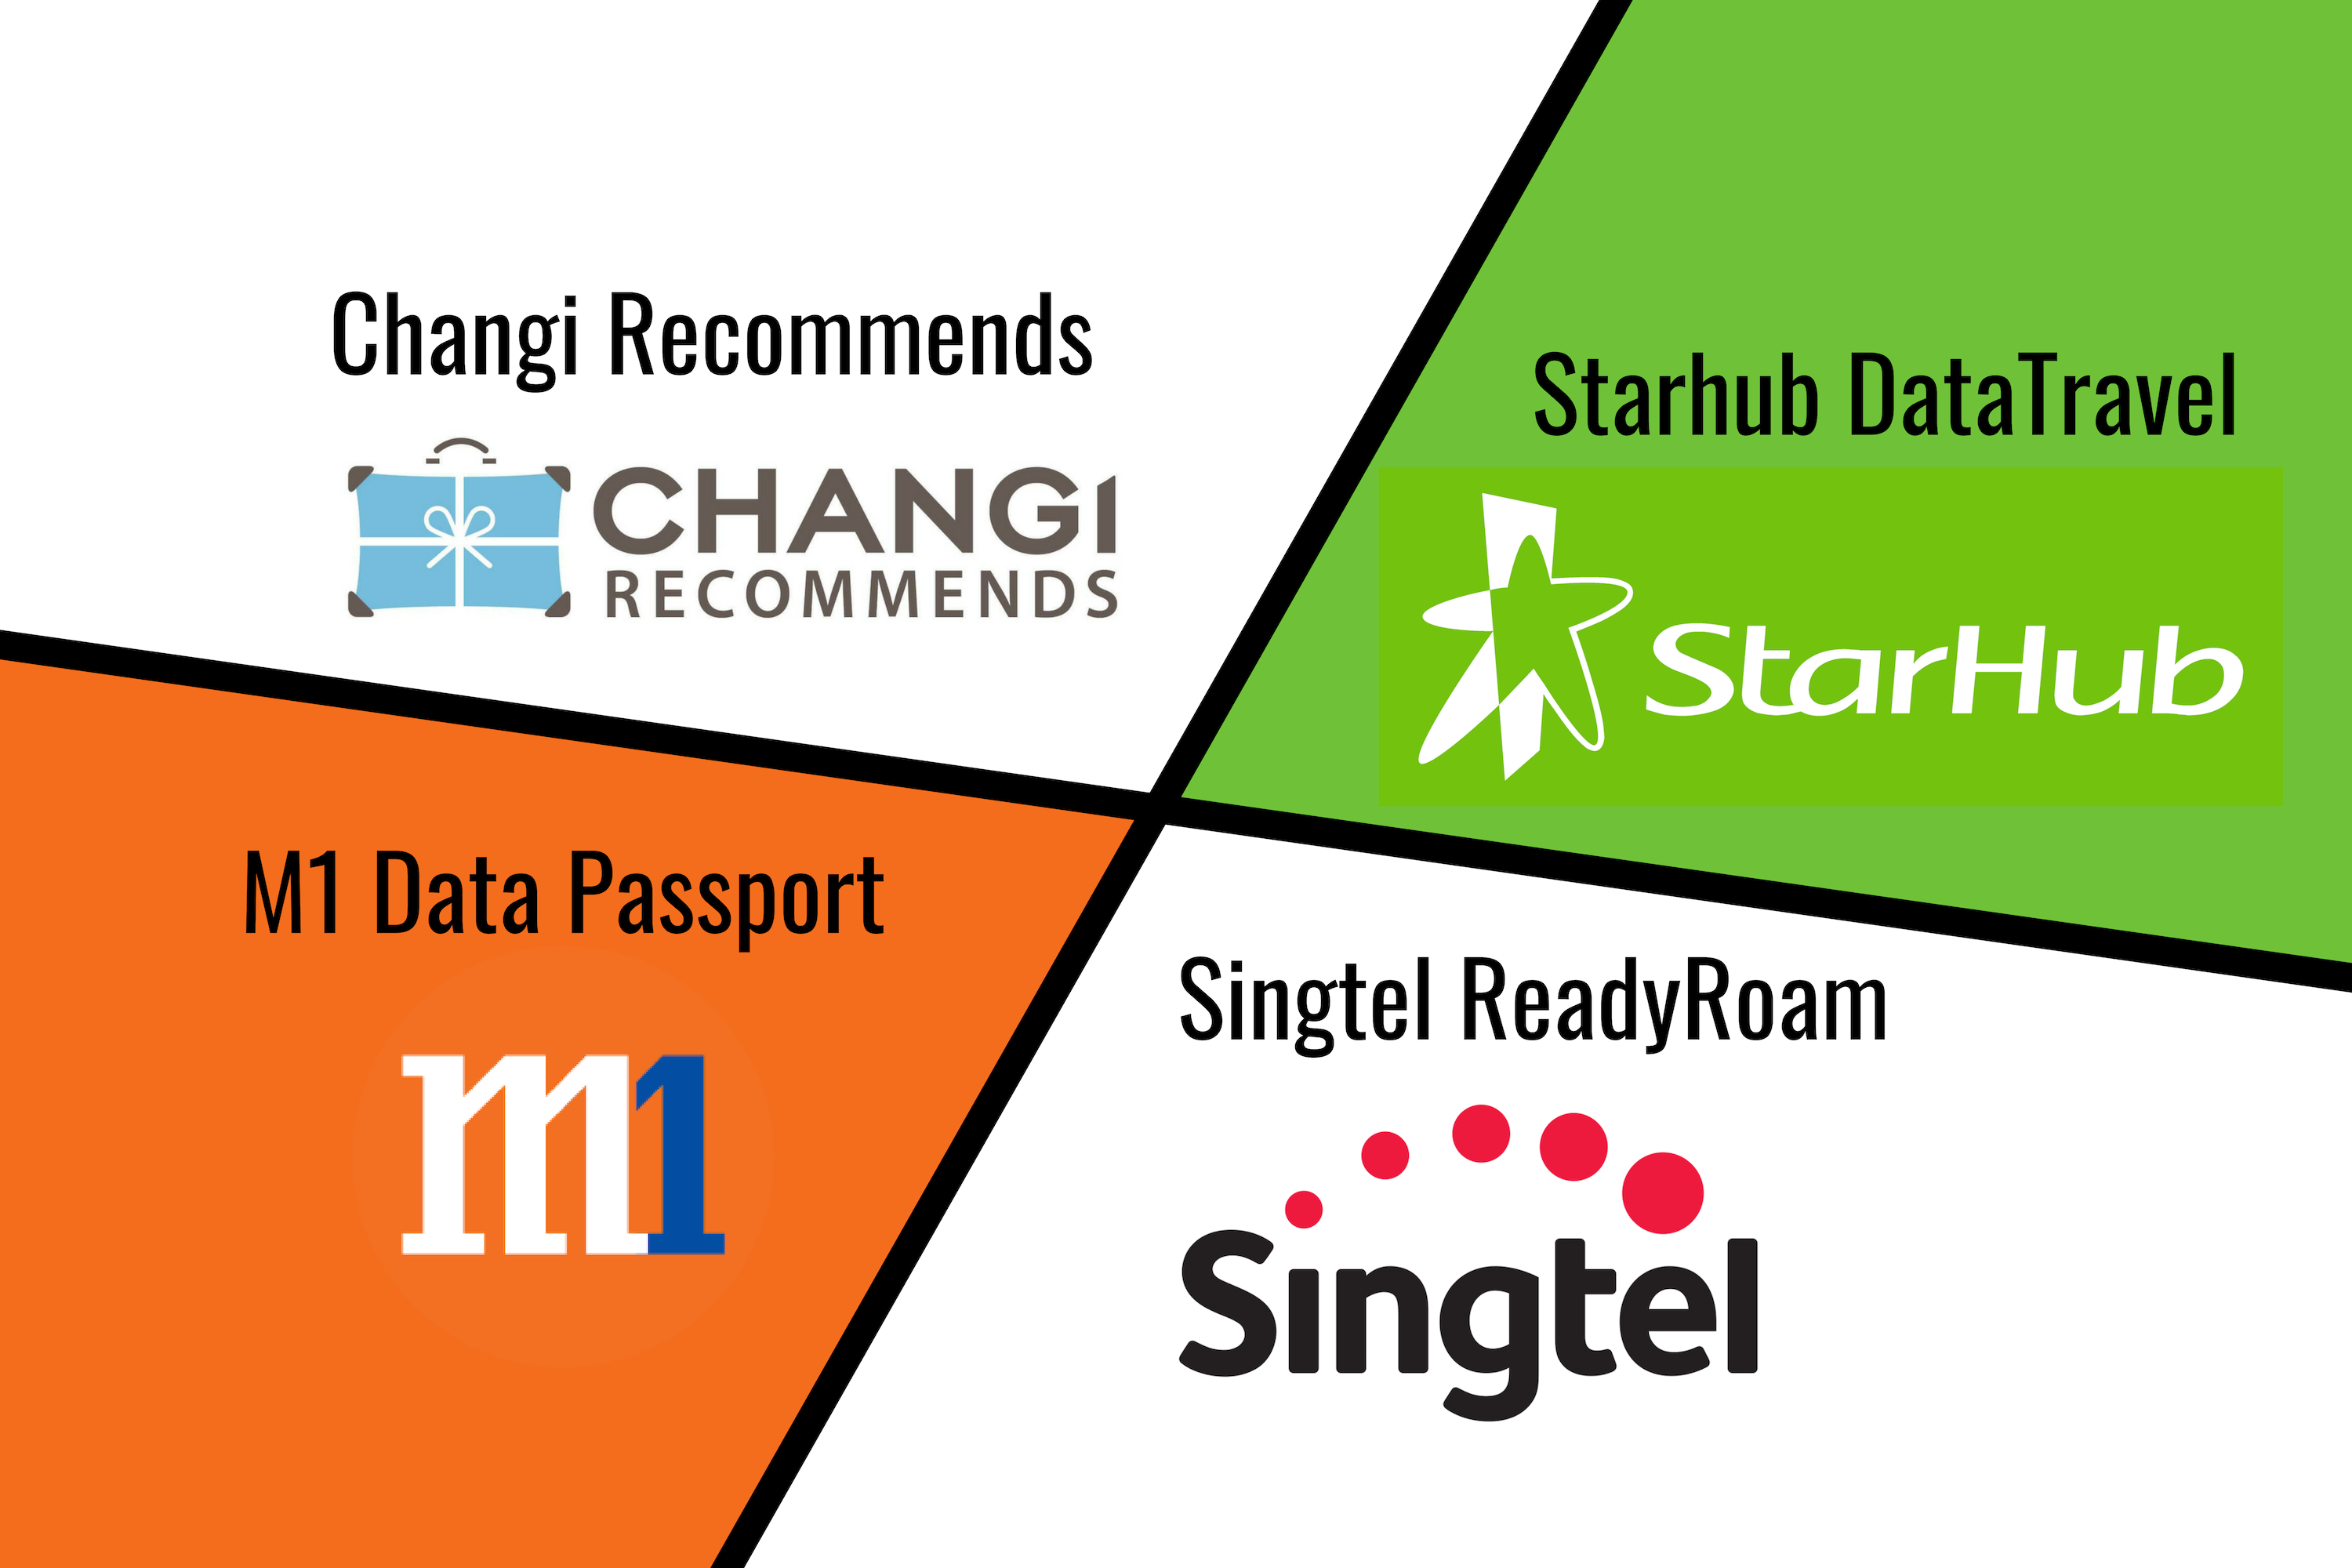 Cheapest Overseas Data For Singaporeans: Singtel ReadyRoam